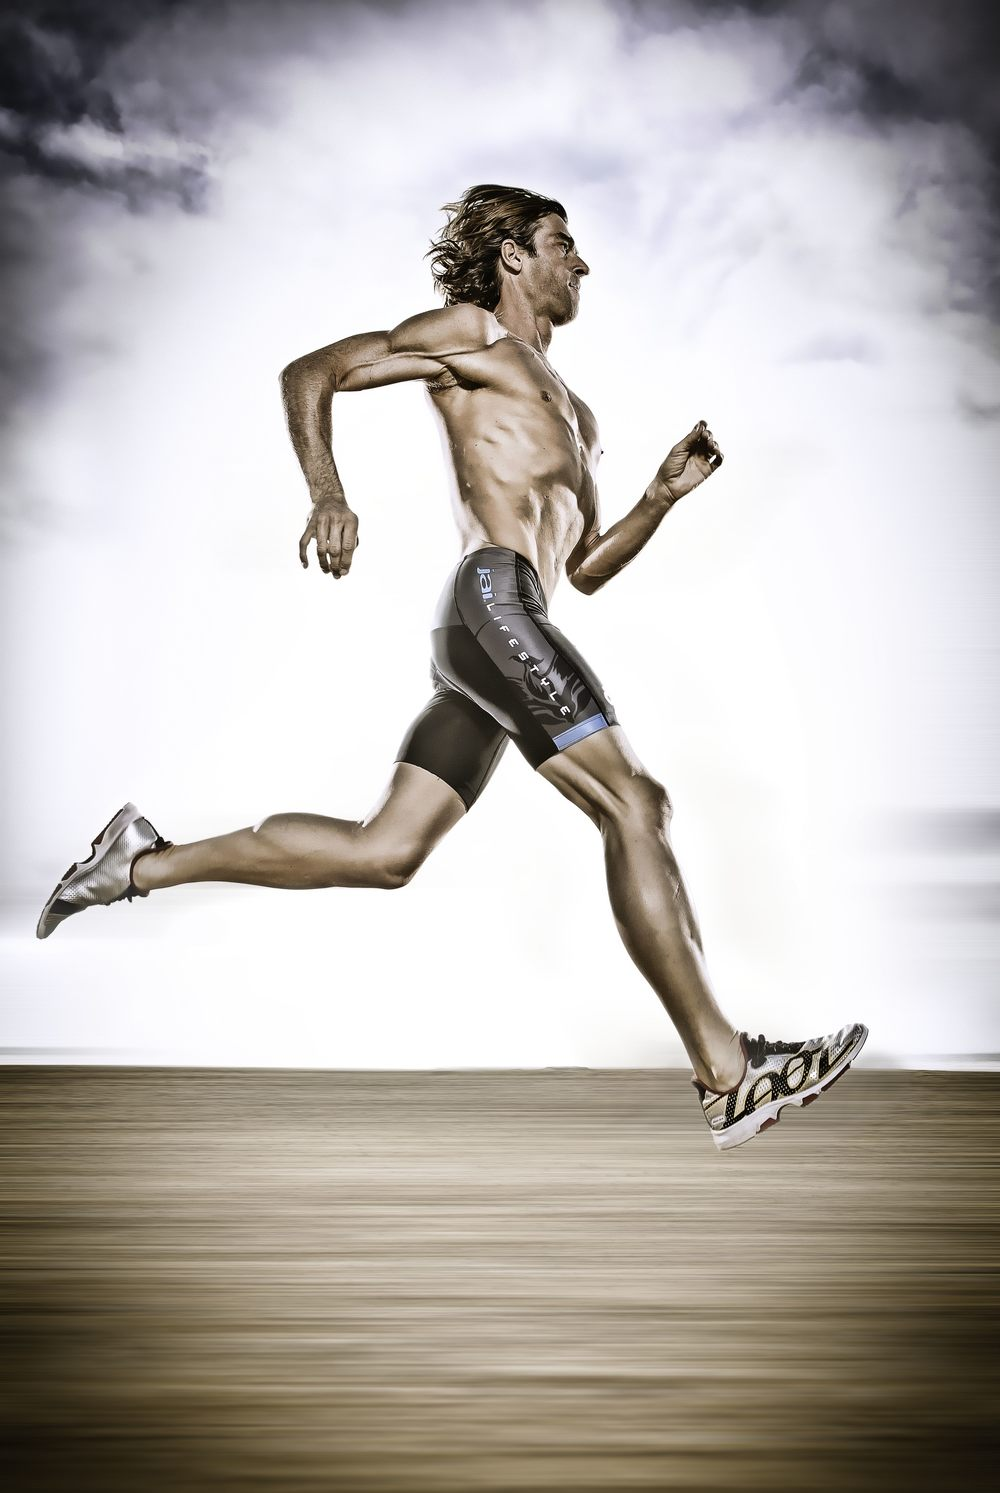 Rich Roll, Ultramarathon Runner. Image source: http://www.huffingtonpost.com/amy-ziff/rich-roll-interview_b_1547092.html